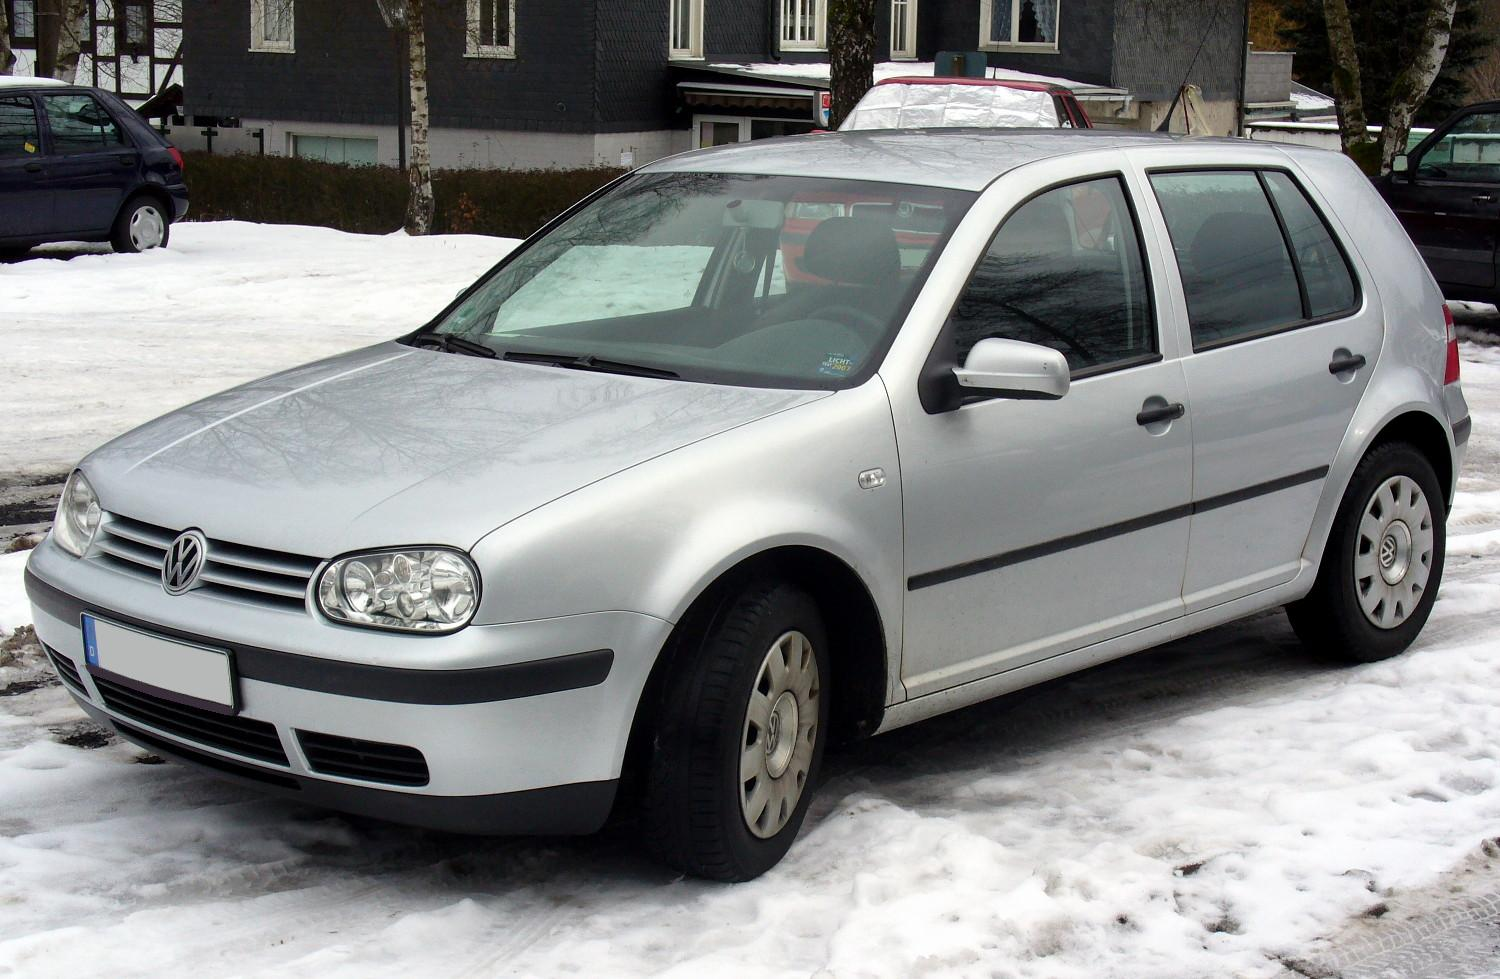 file vw golf iv facelift jpg wikimedia commons. Black Bedroom Furniture Sets. Home Design Ideas